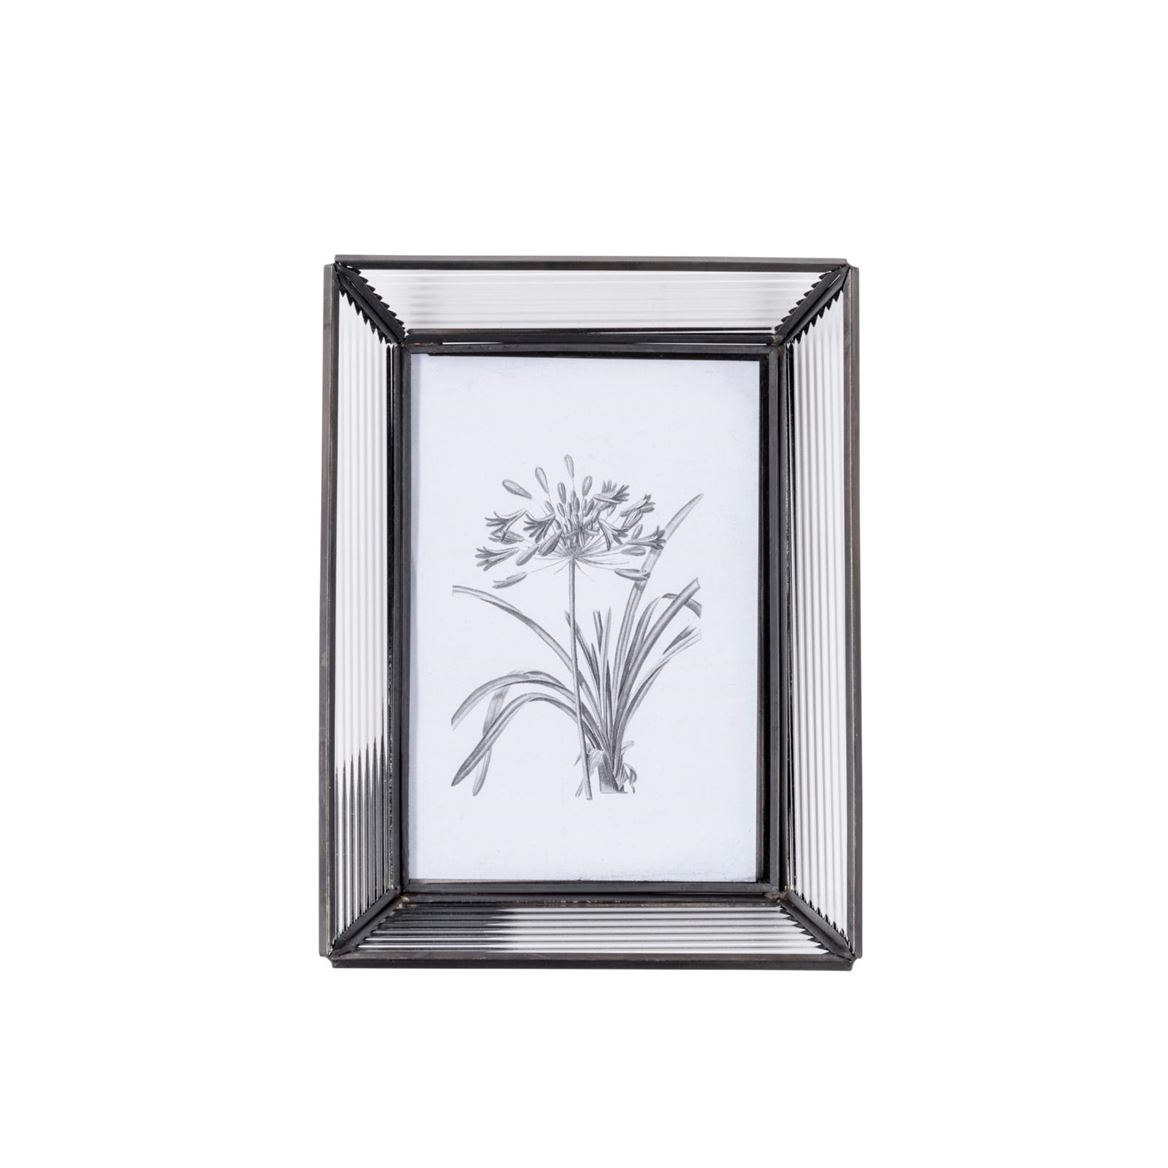 AZARIA Cadre photo transparent H 20 x Larg. 15 x P 2,5 cm_azaria-cadre-photo-transparent-h-20-x-larg--15-x-p-2,5-cm